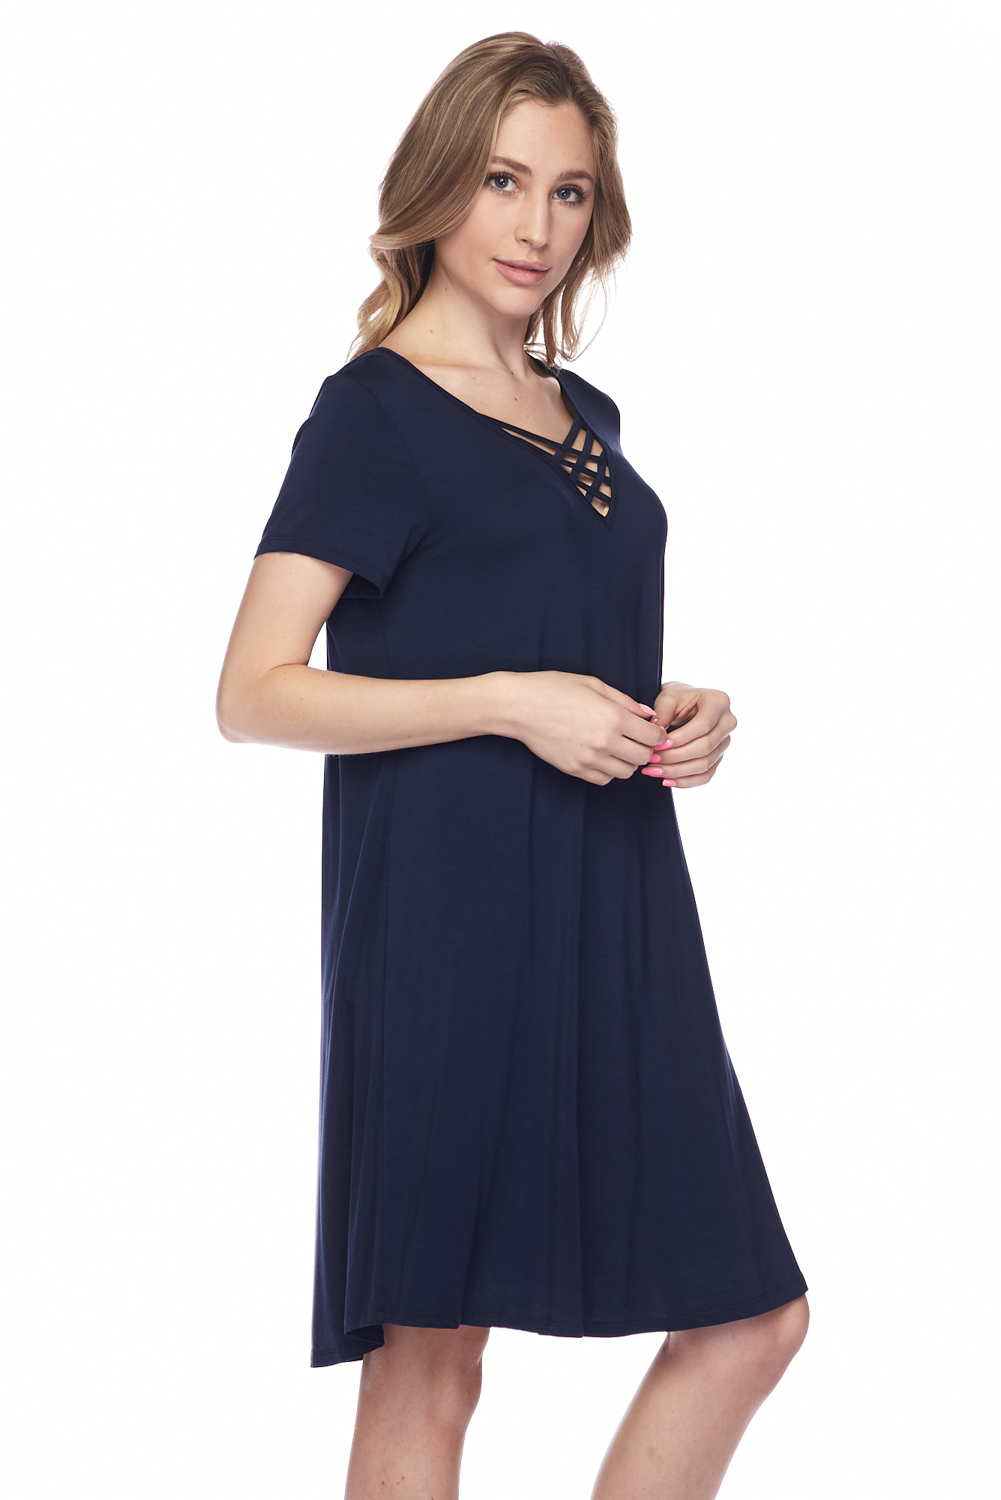 Modal Rounded Hem Dress Tunic Top